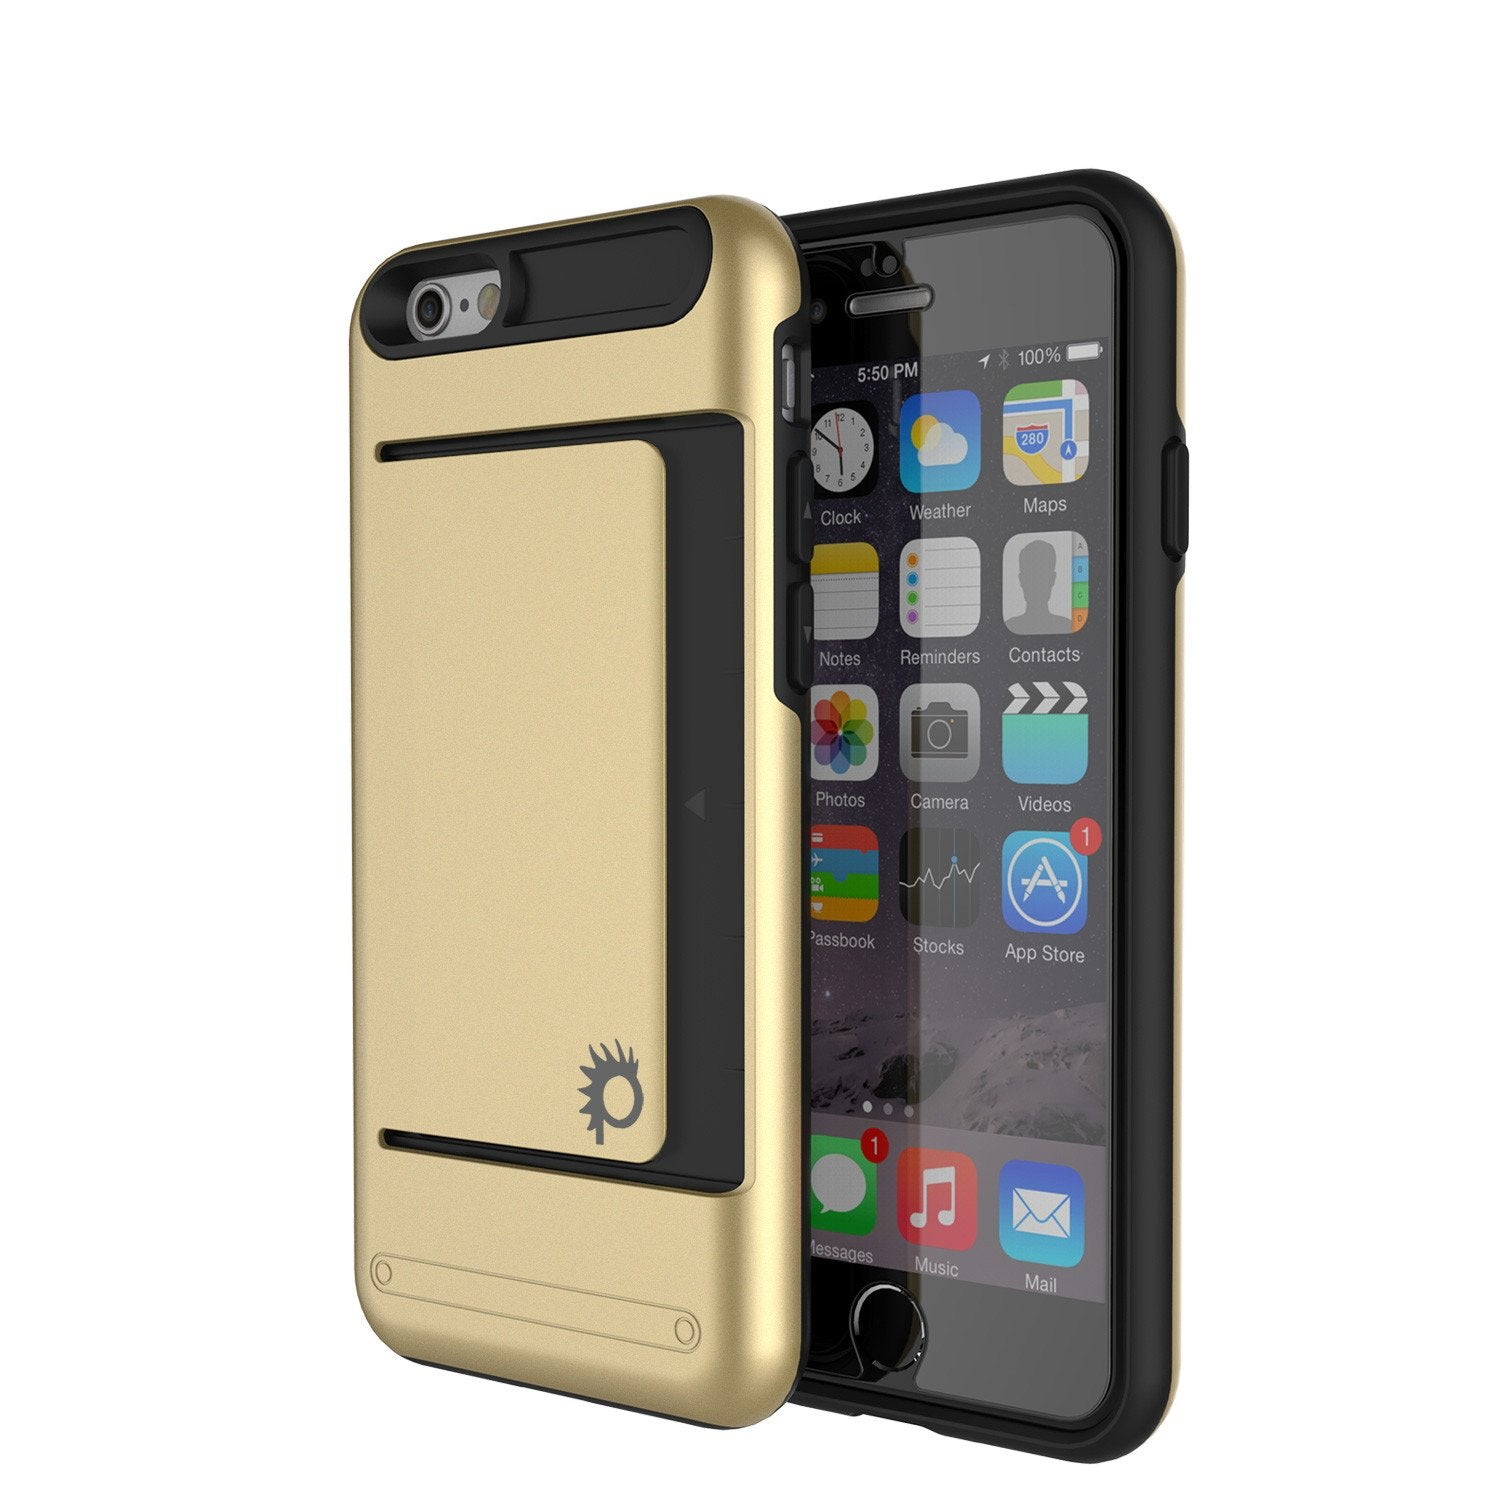 iPhone 6/6s Case PunkCase CLUTCH Gold Series Slim Armor Soft Cover Case w/ Tempered Glass